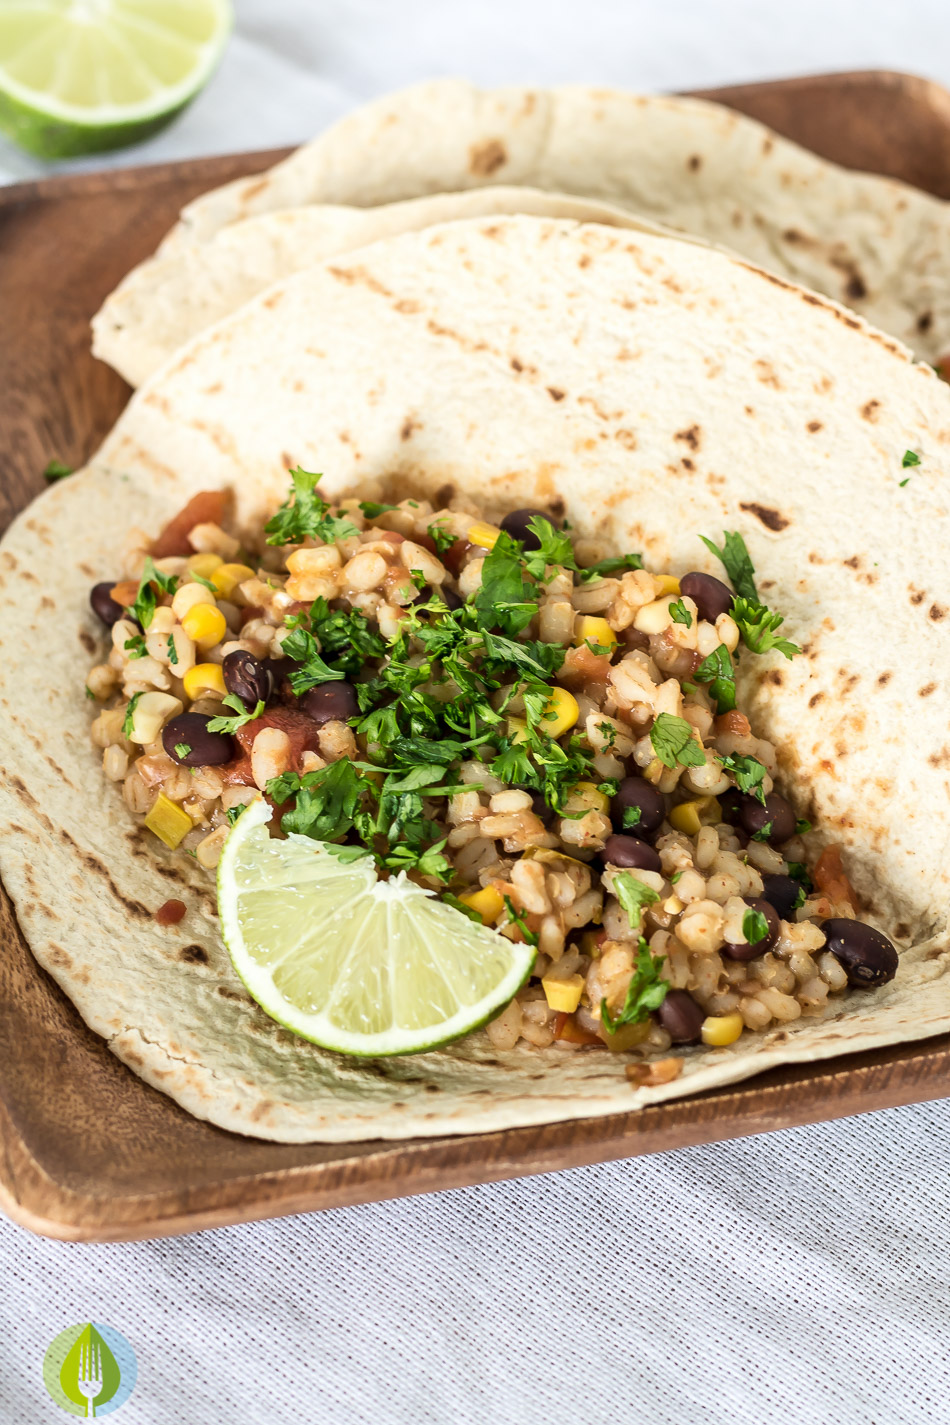 soft taco shell filled with vegan black bean and barley filling